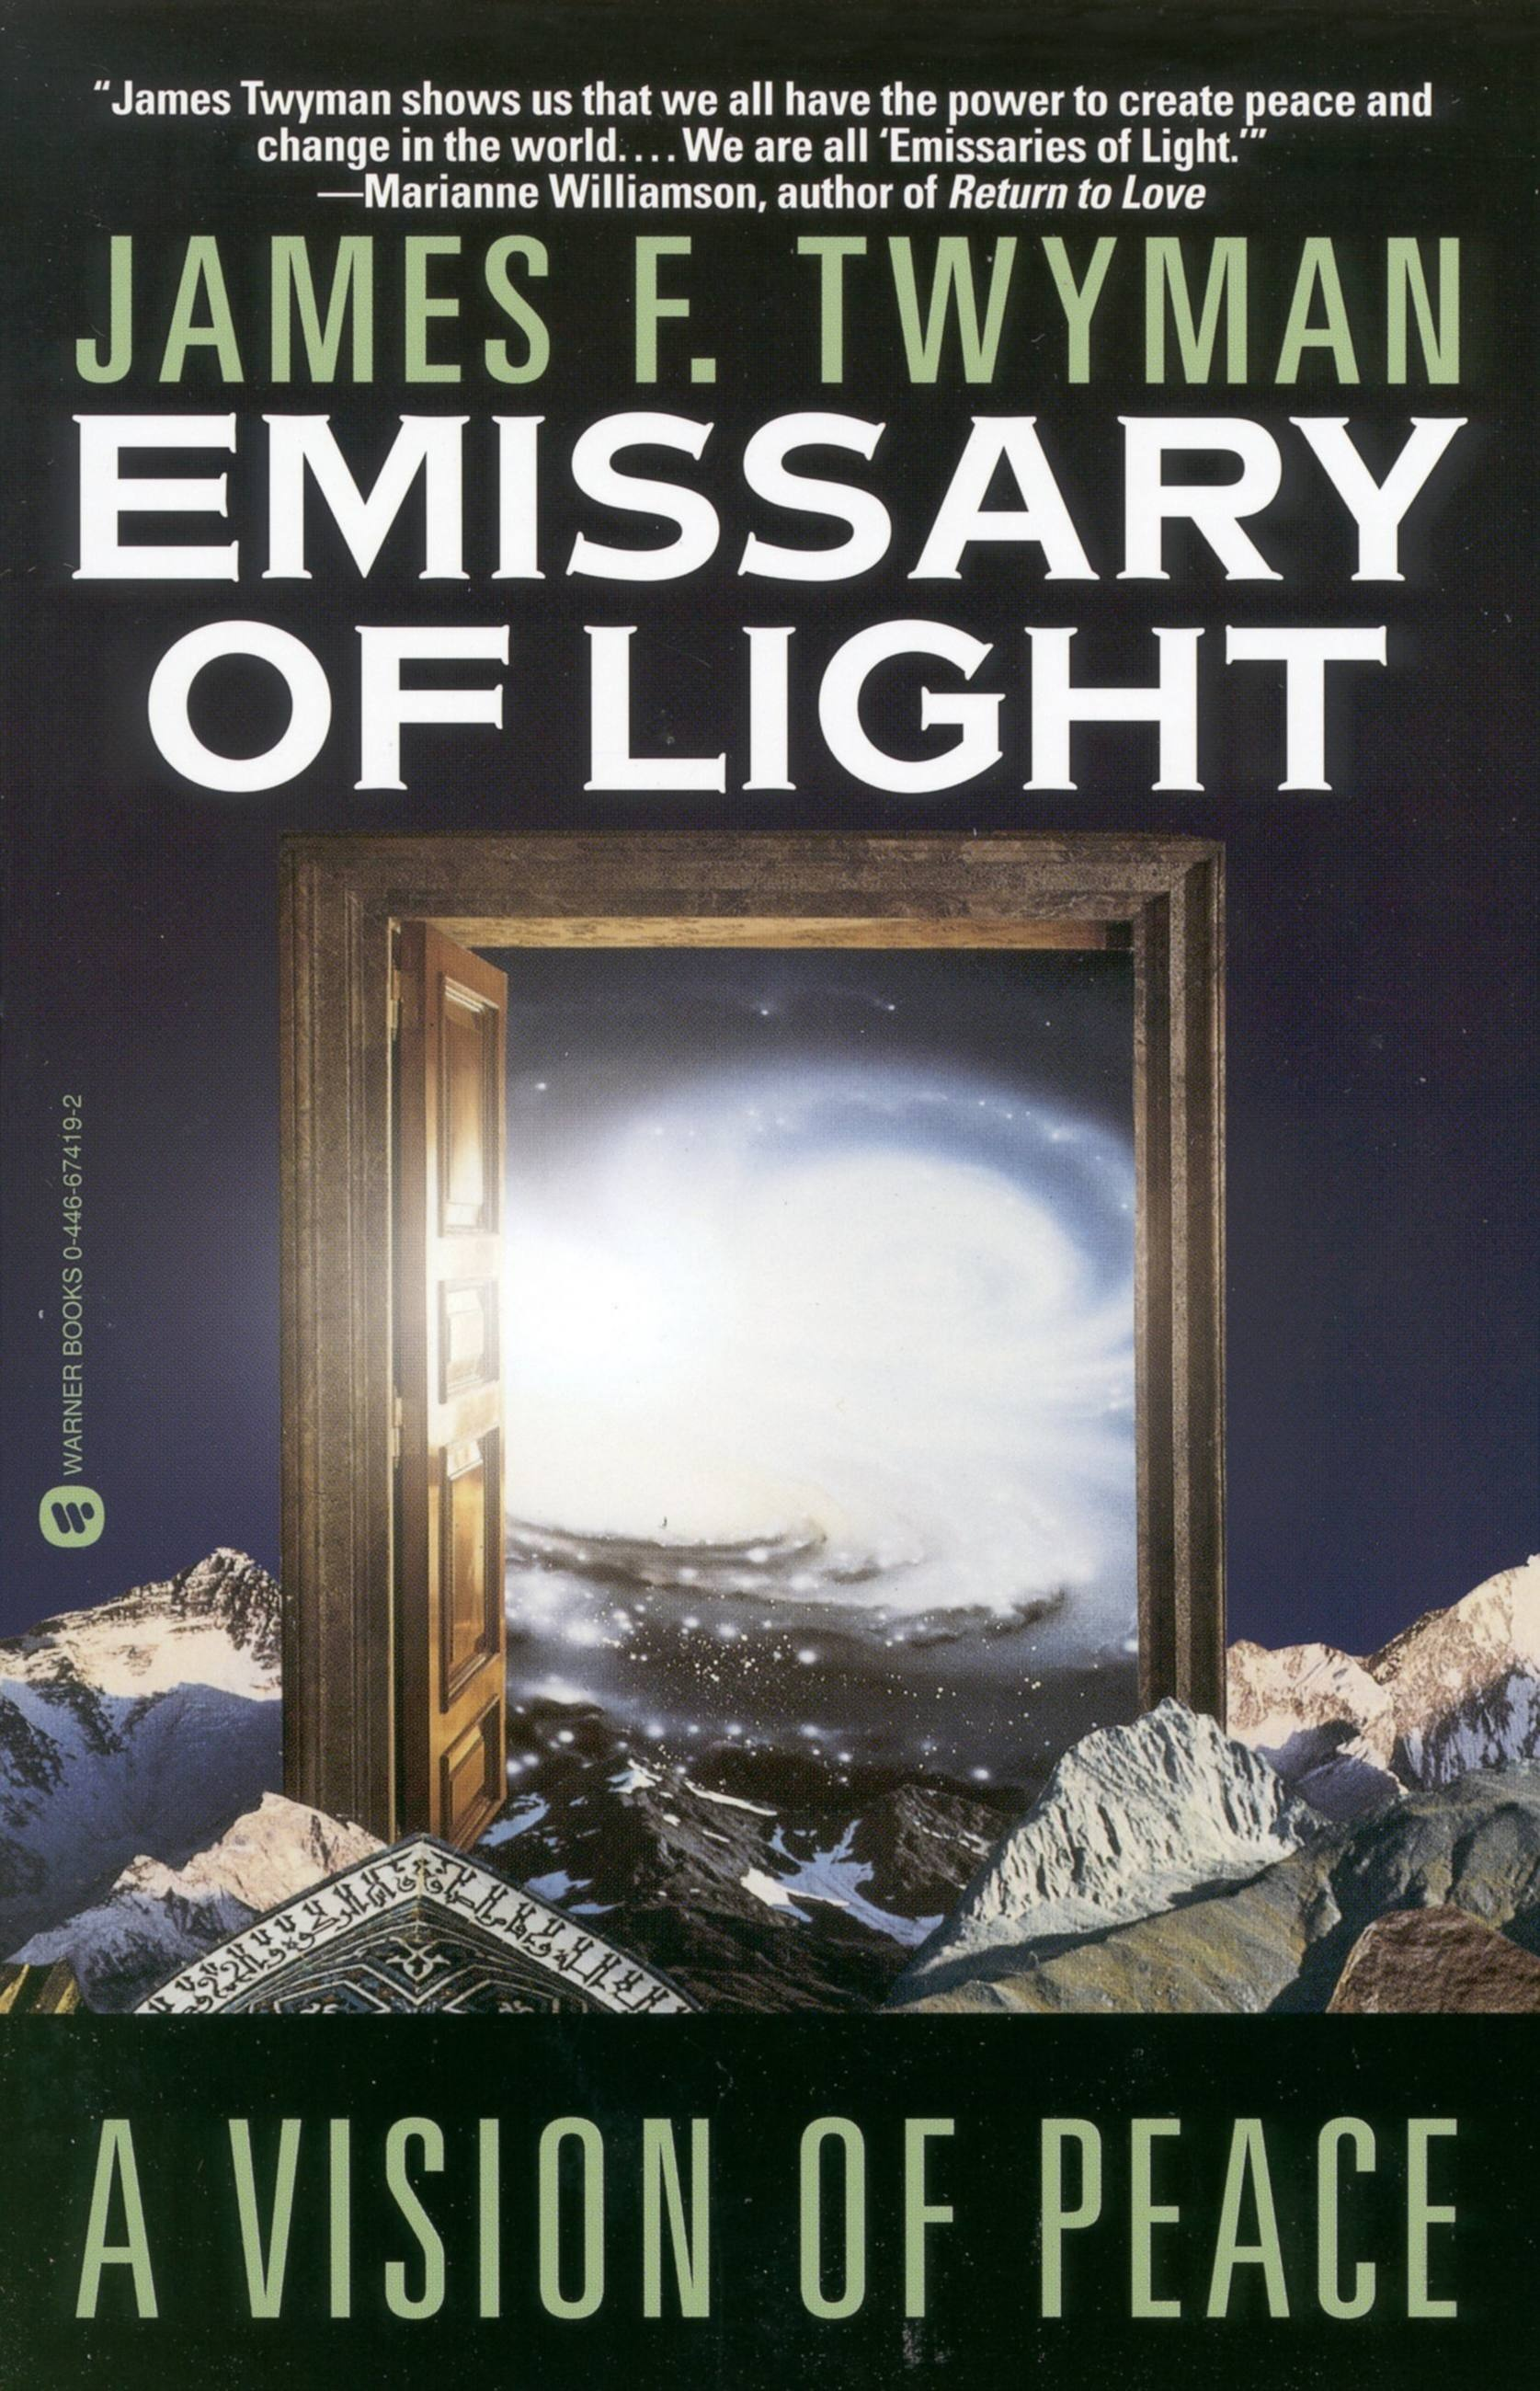 Emissary of Light